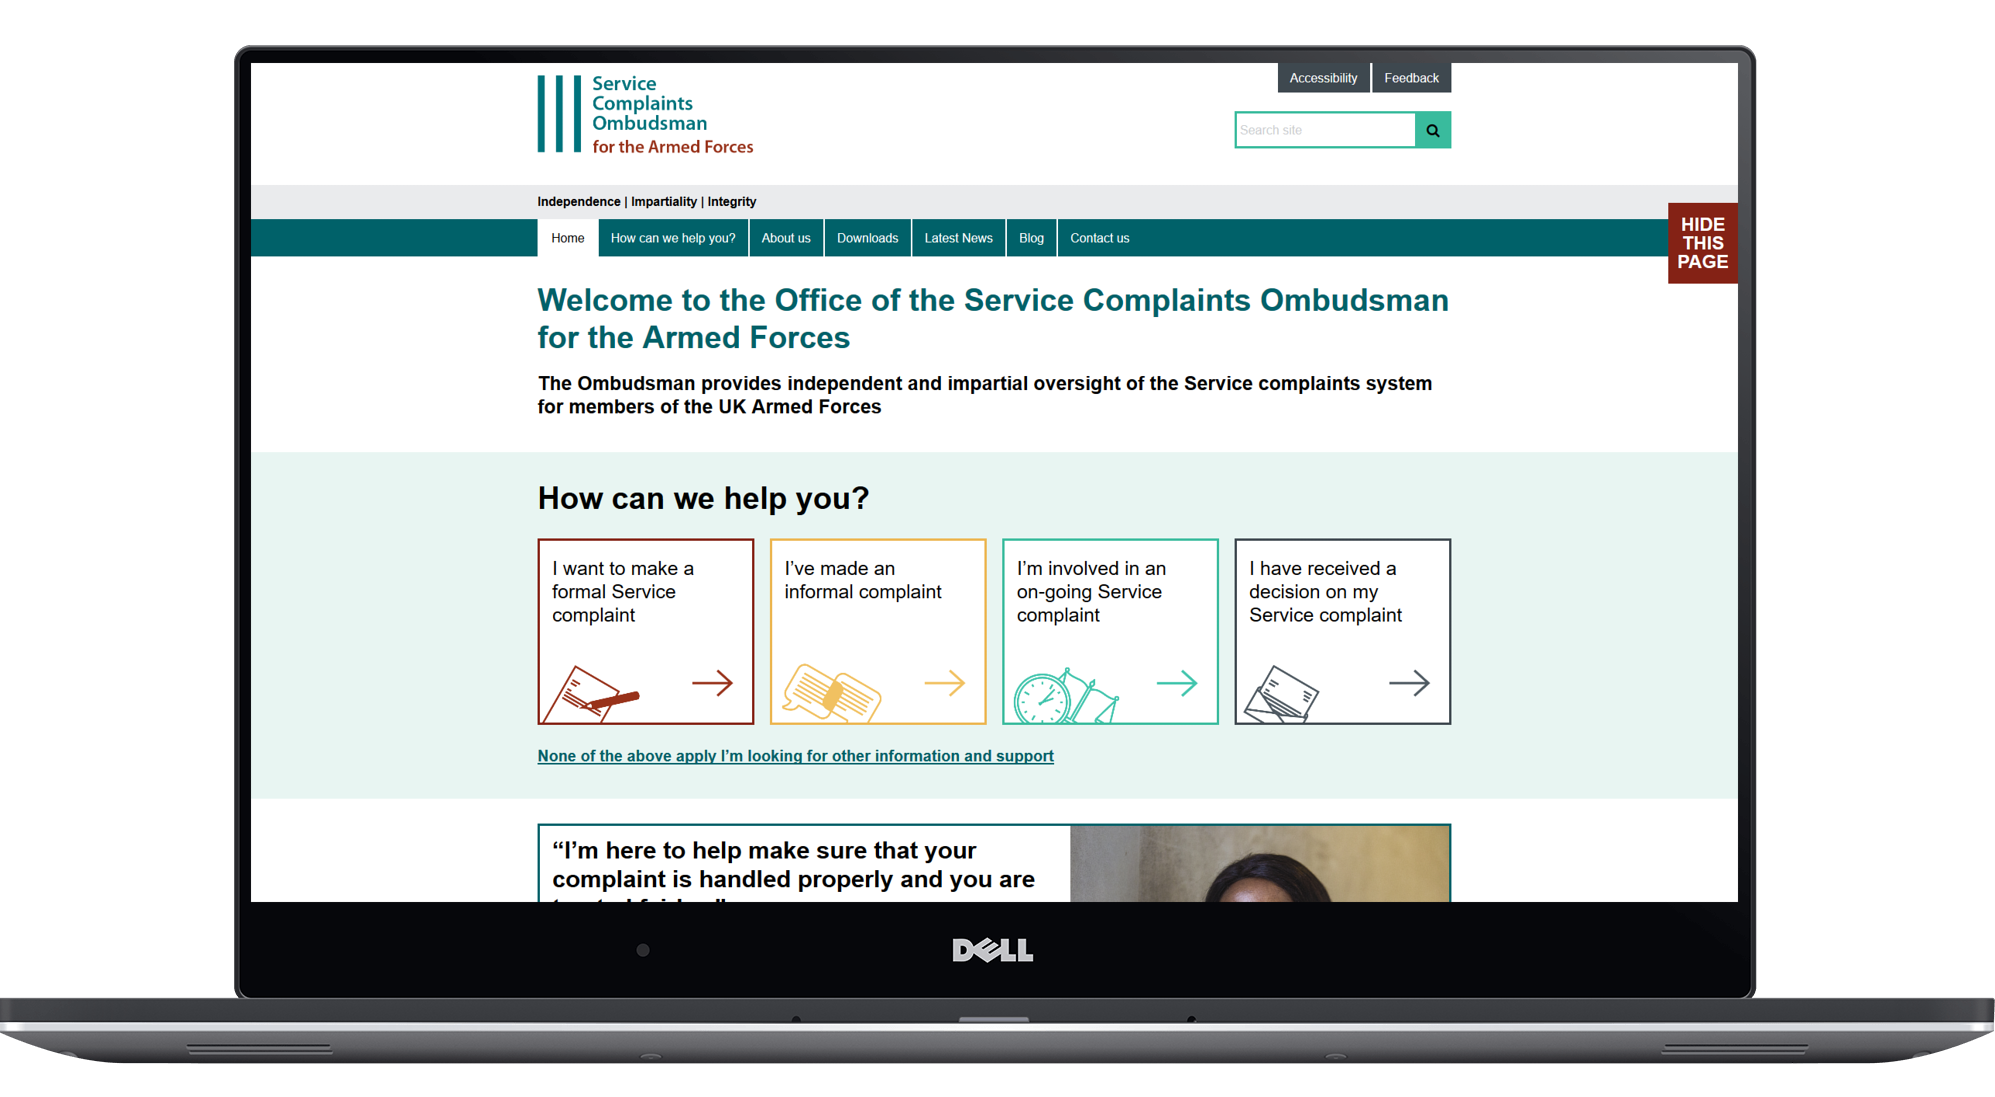 Service Complaints Ombudsman for the Armed Forces website displayed on a laptop